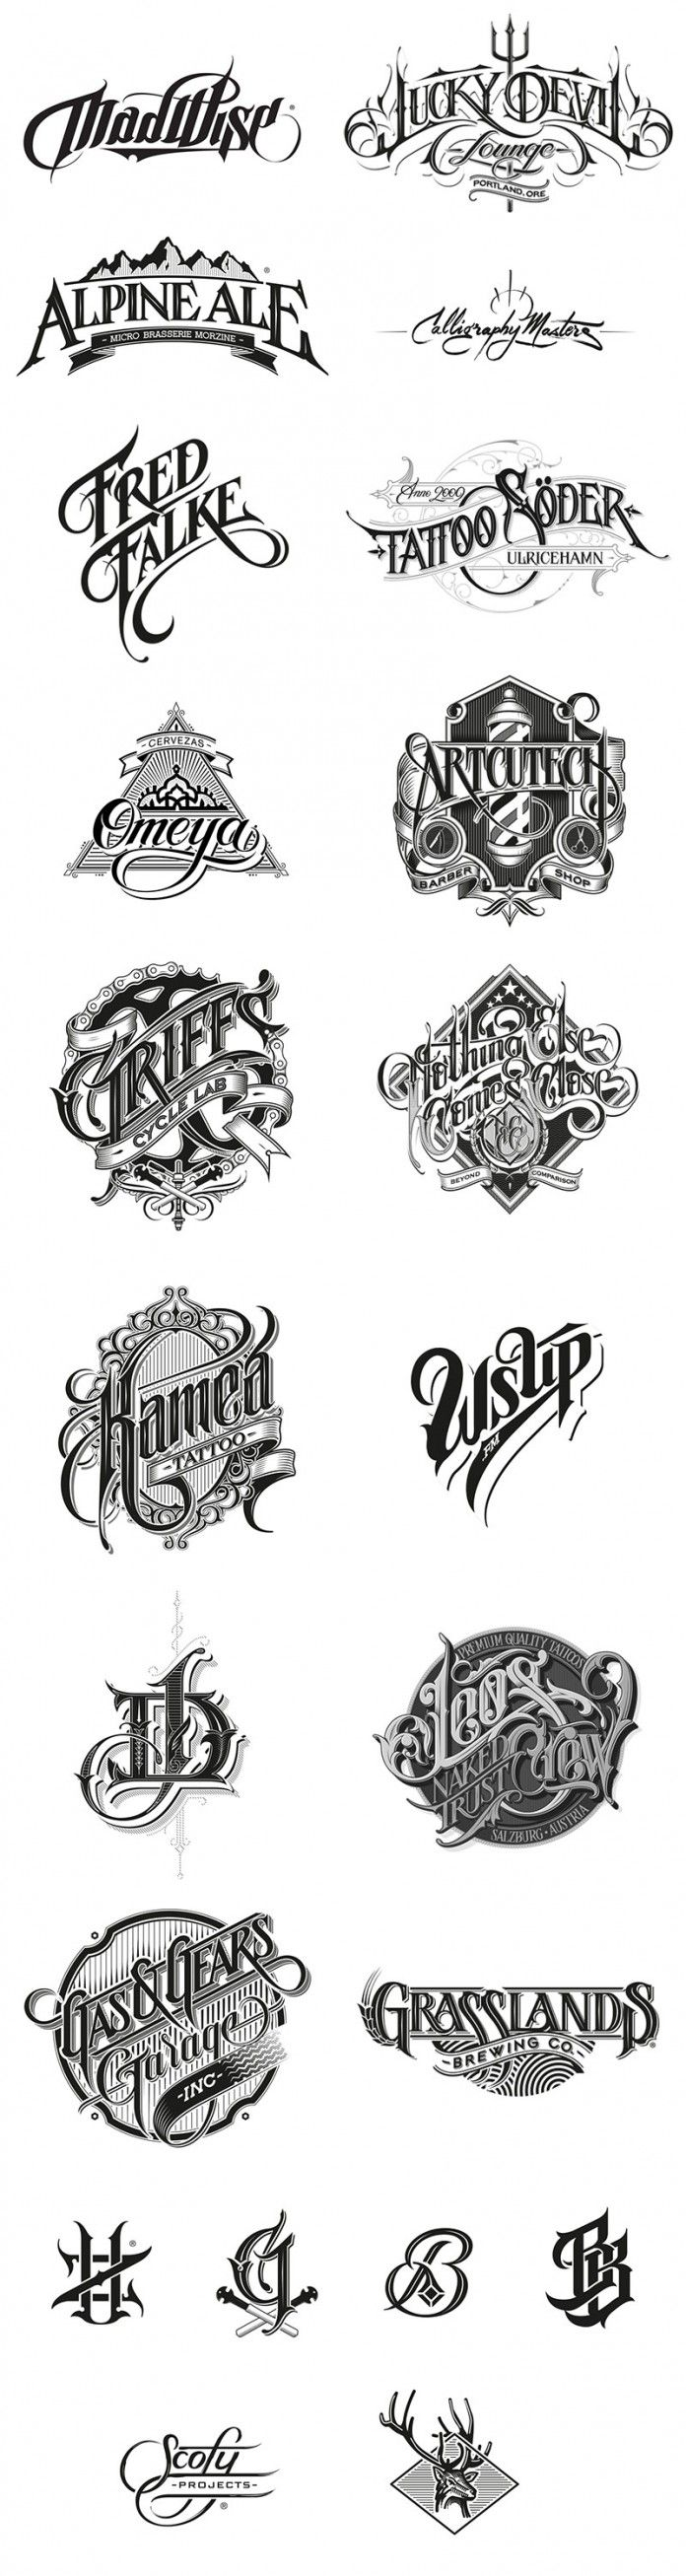 Hand Drawn Logotypes By Martin Schmetzer Lettering Hand Drawn Logotype Lettering Design